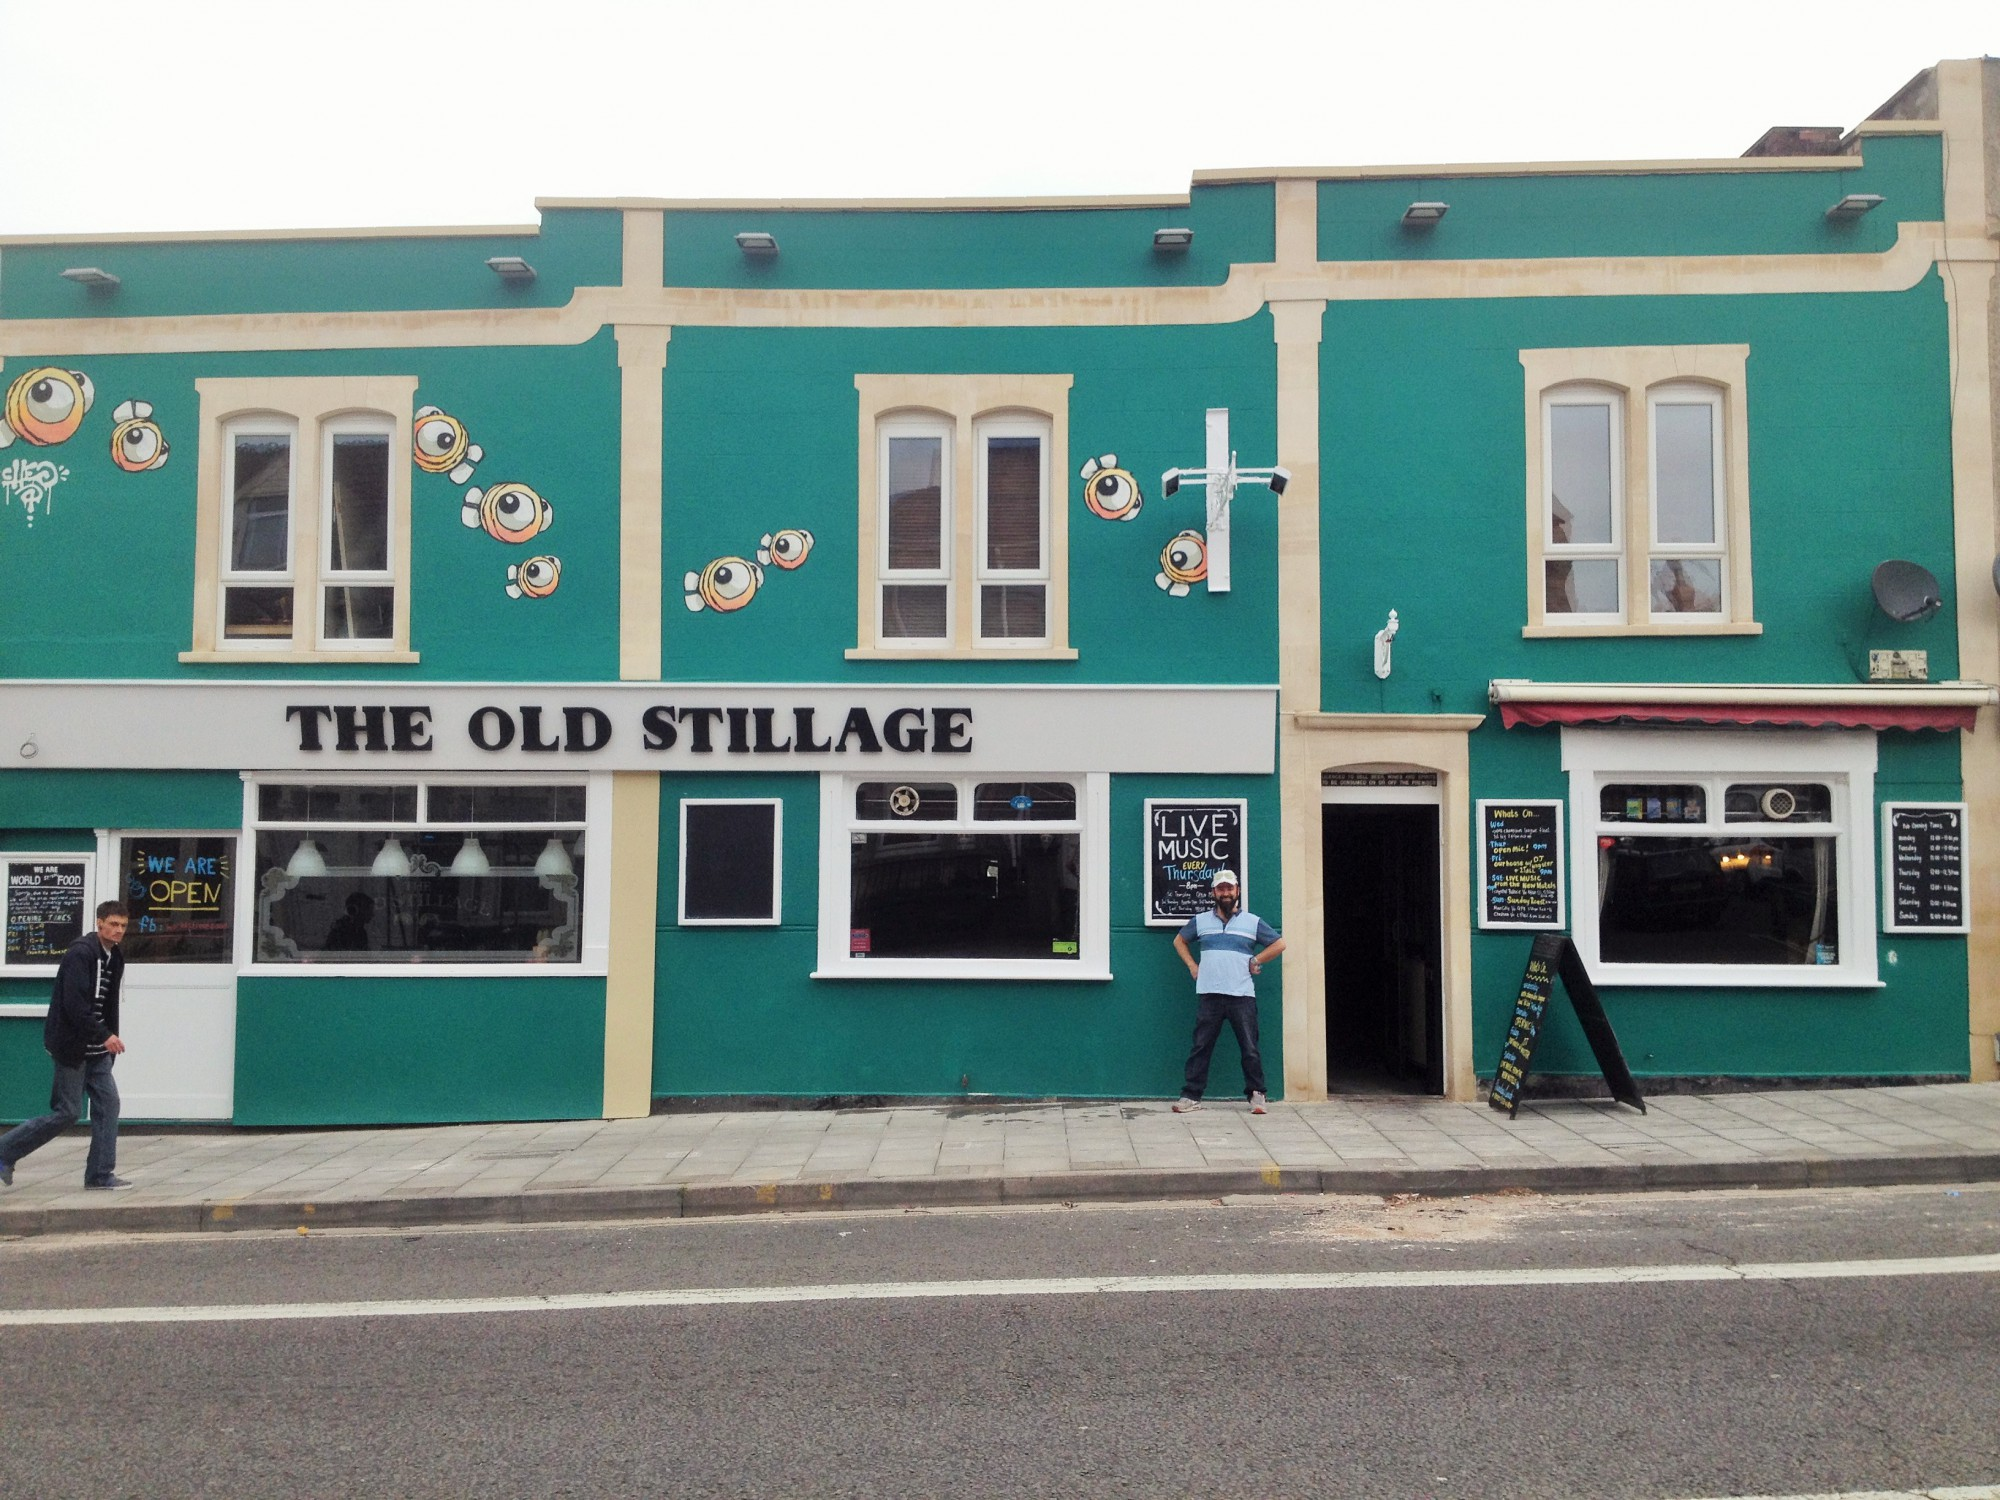 The front of the Old Stillage pub in Church Road, Bristol